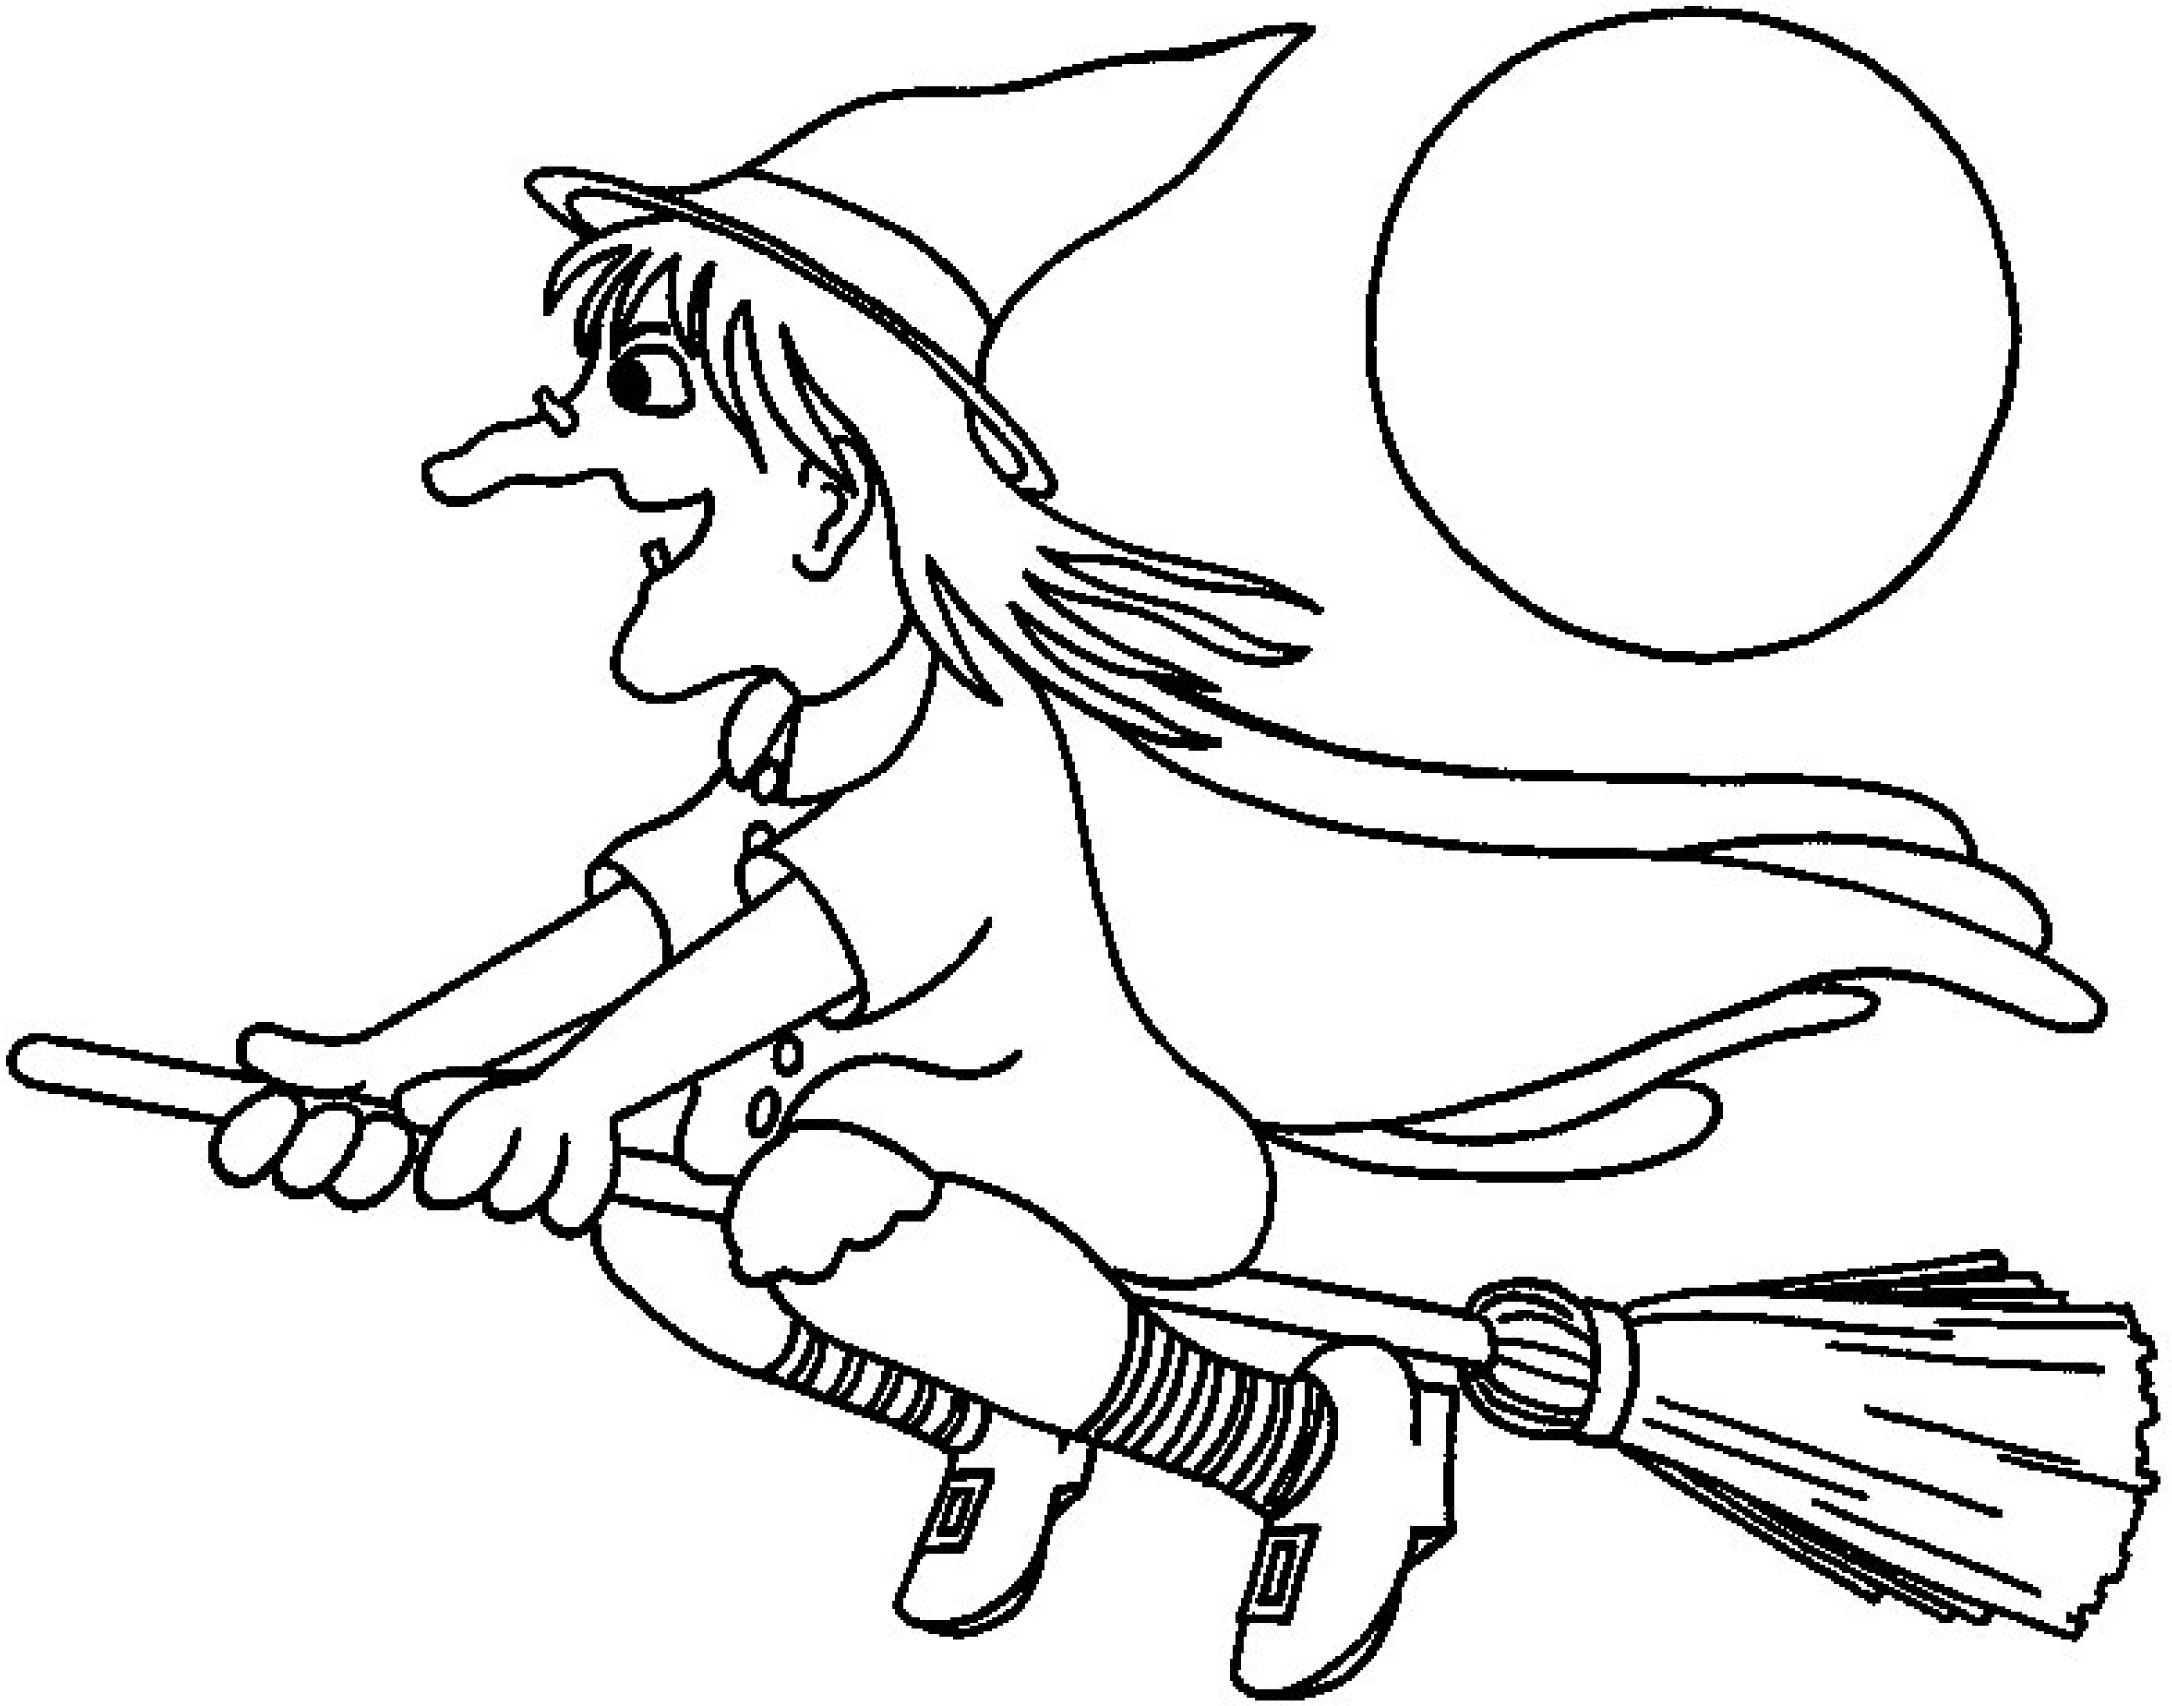 free halloween coloring pag...